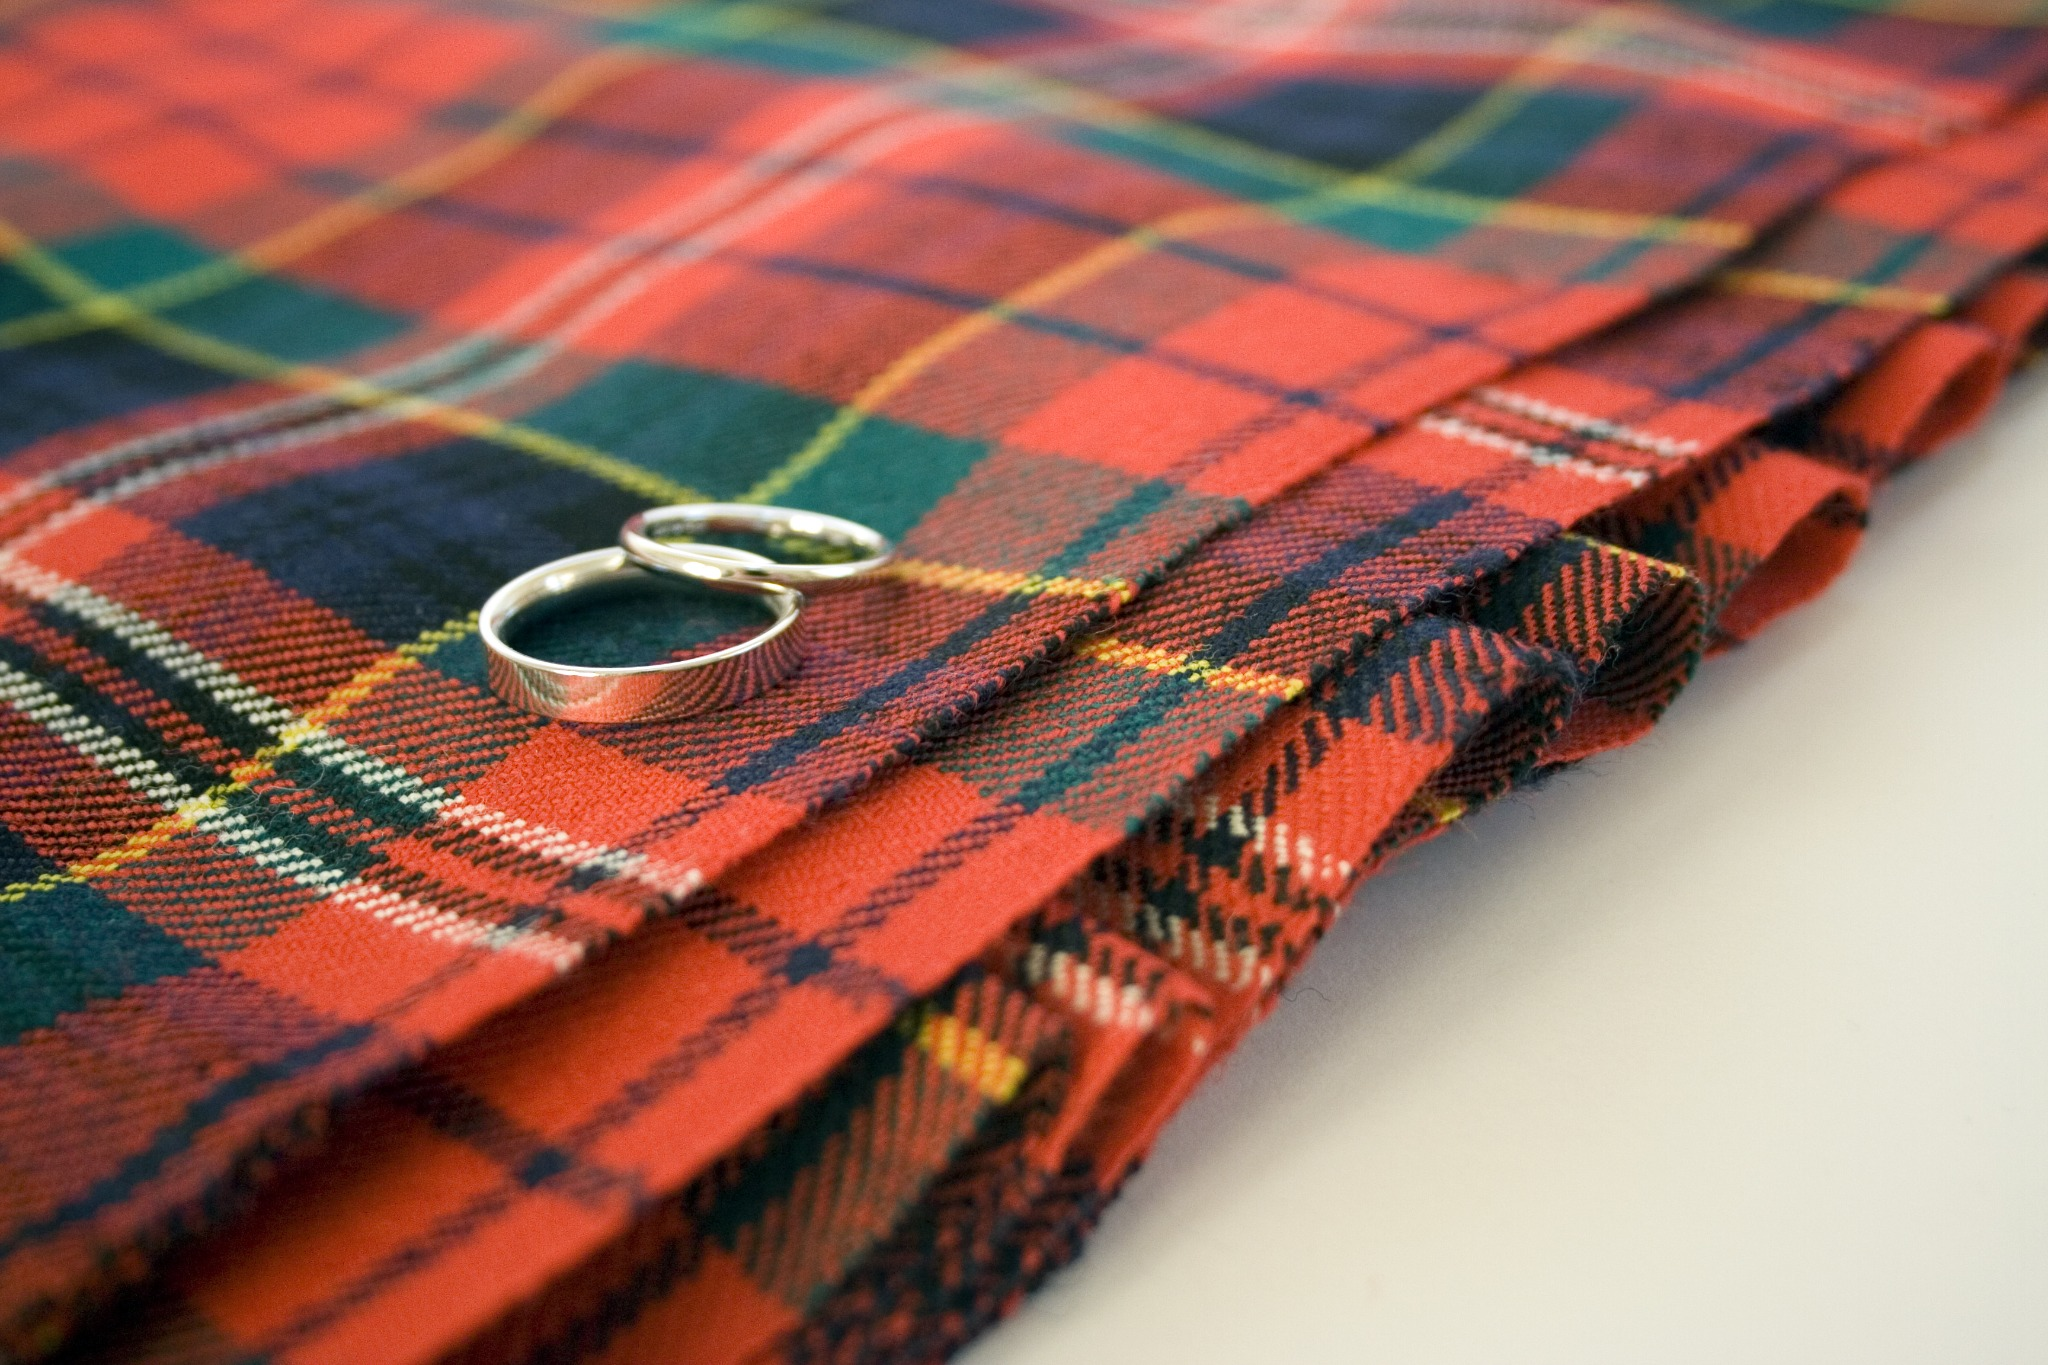 Wedding rings on a piece of red tartan